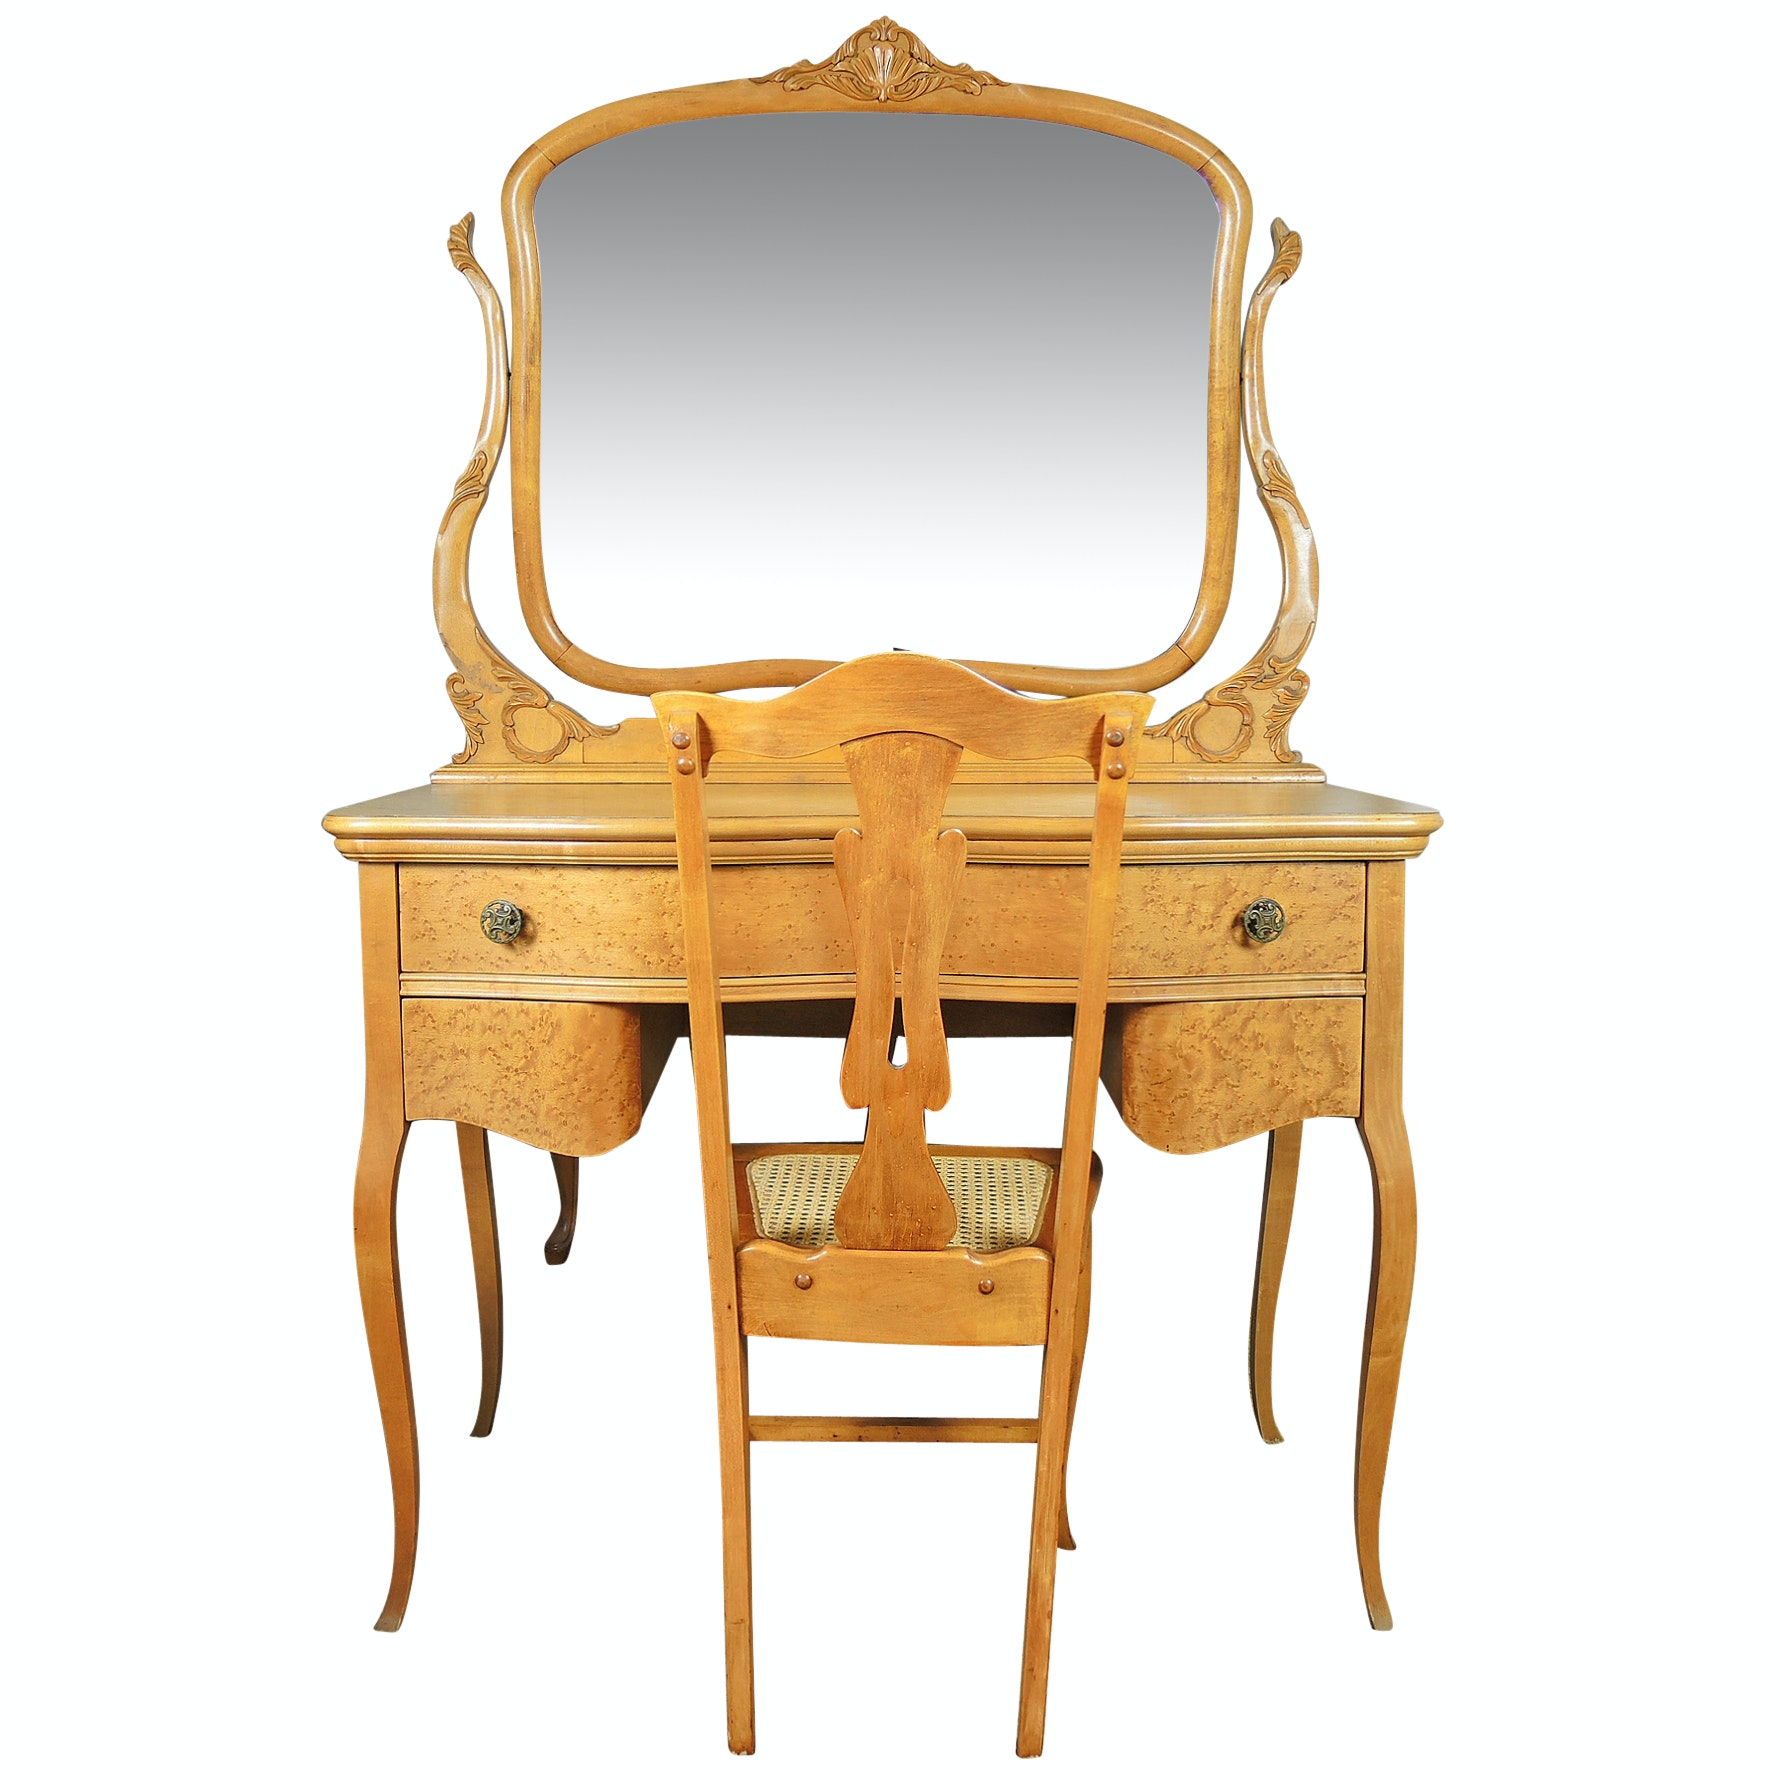 Birdseye Maple Dressing Table and Chair Early Twentieth Century